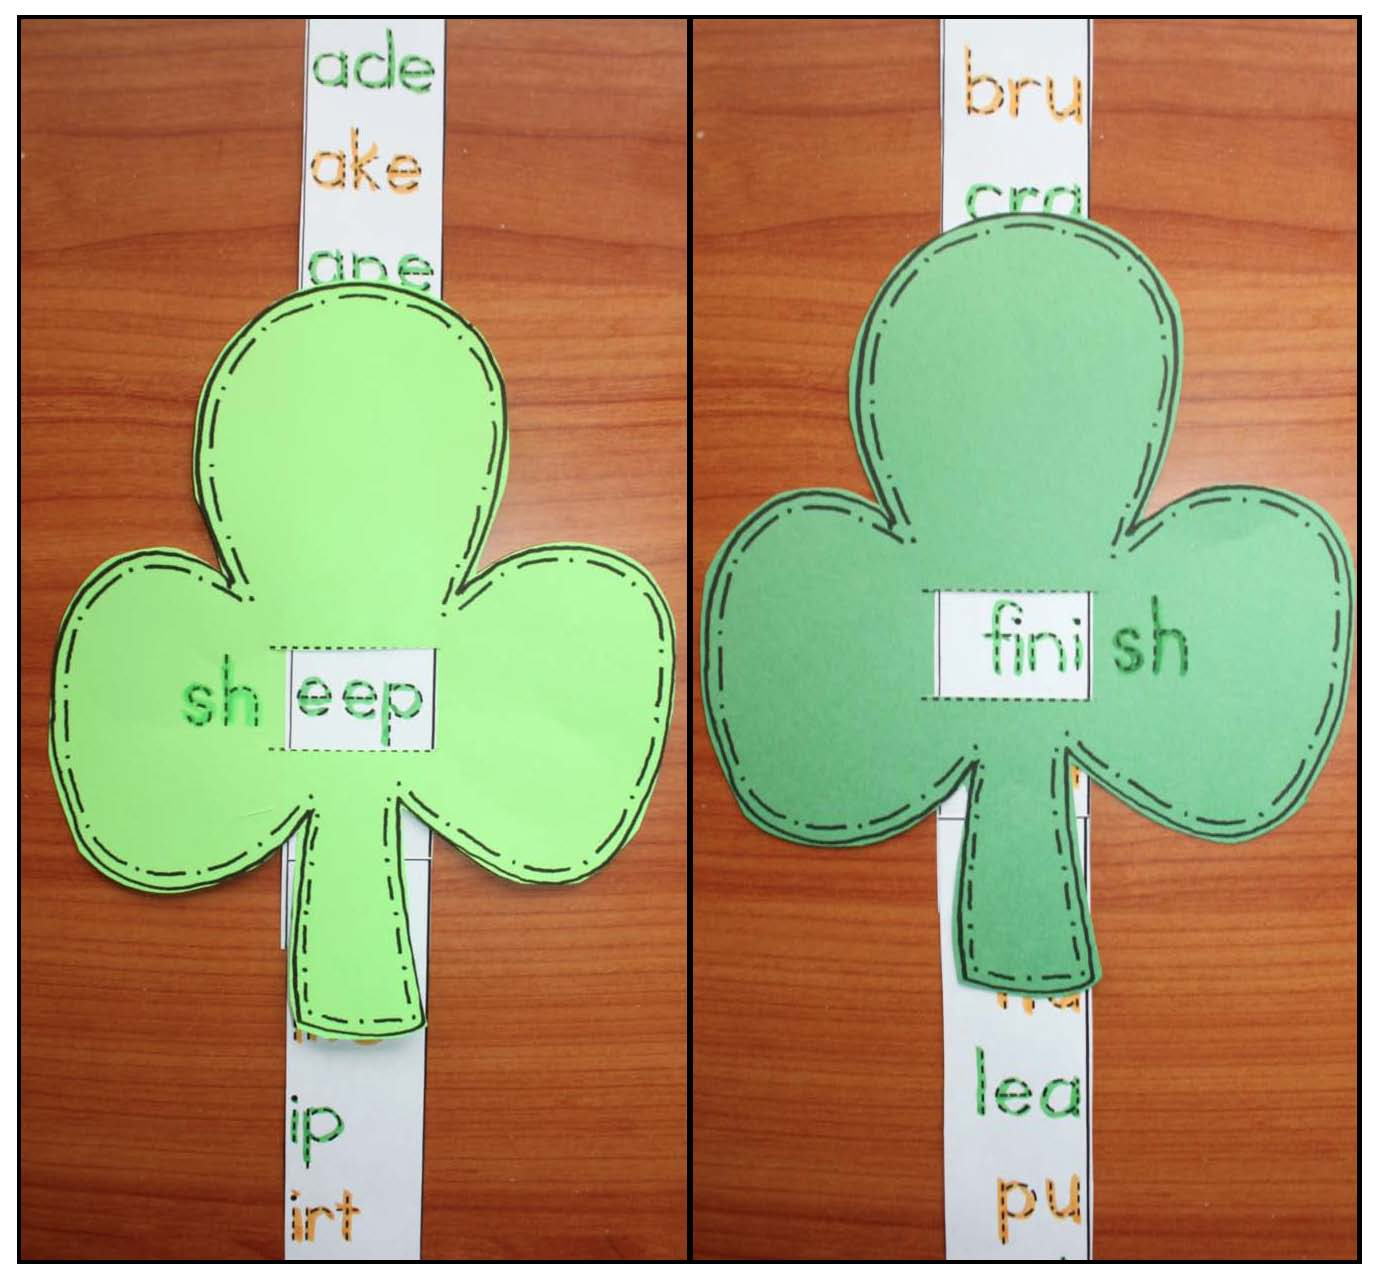 shamrock activities, shamrock crafts, shamrock games, sh word blend activities, sh word blend games, saint patricks day activities, saint patricks day crafts,